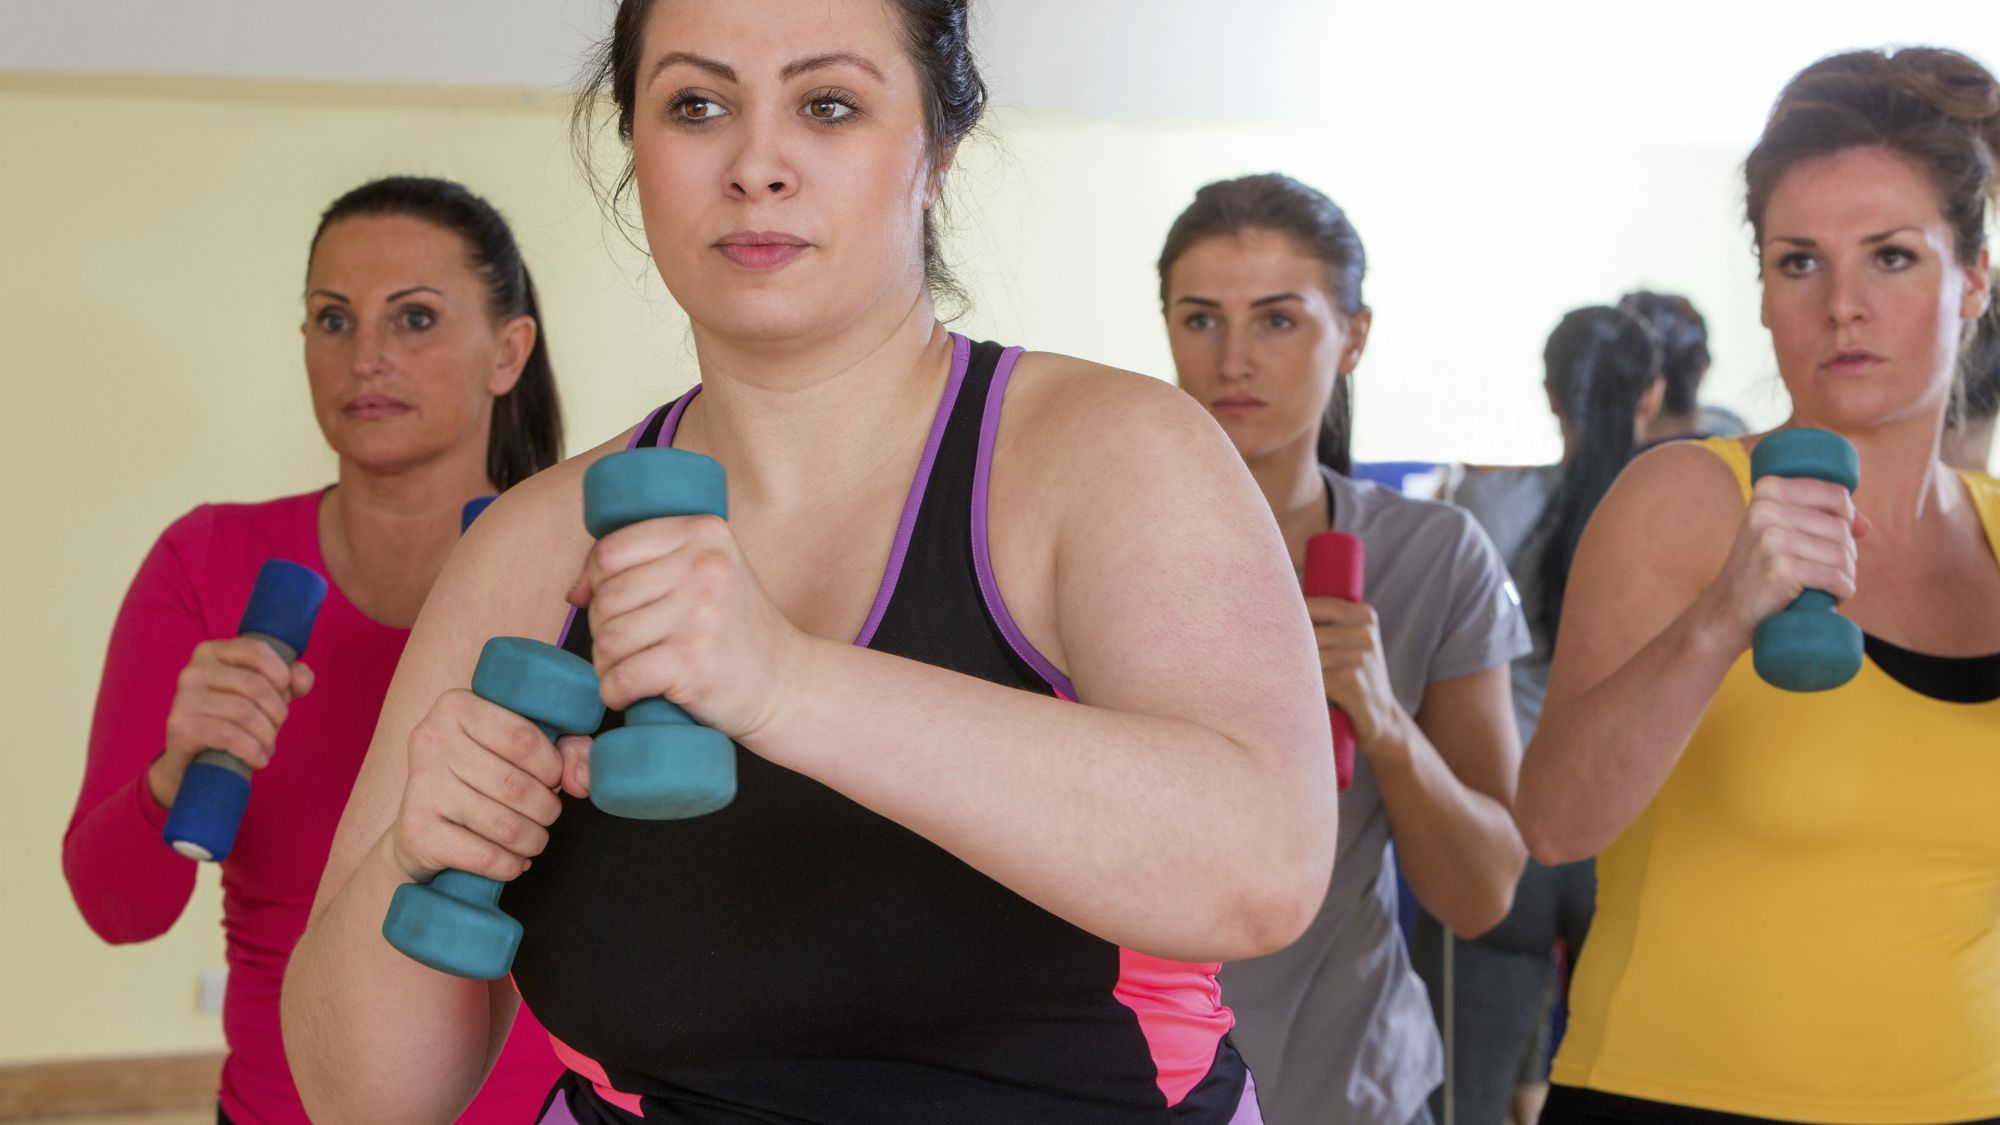 Benefits Of Exercising When You Have Pcos In women, the hair usually thins all over. benefits of exercising when you have pcos